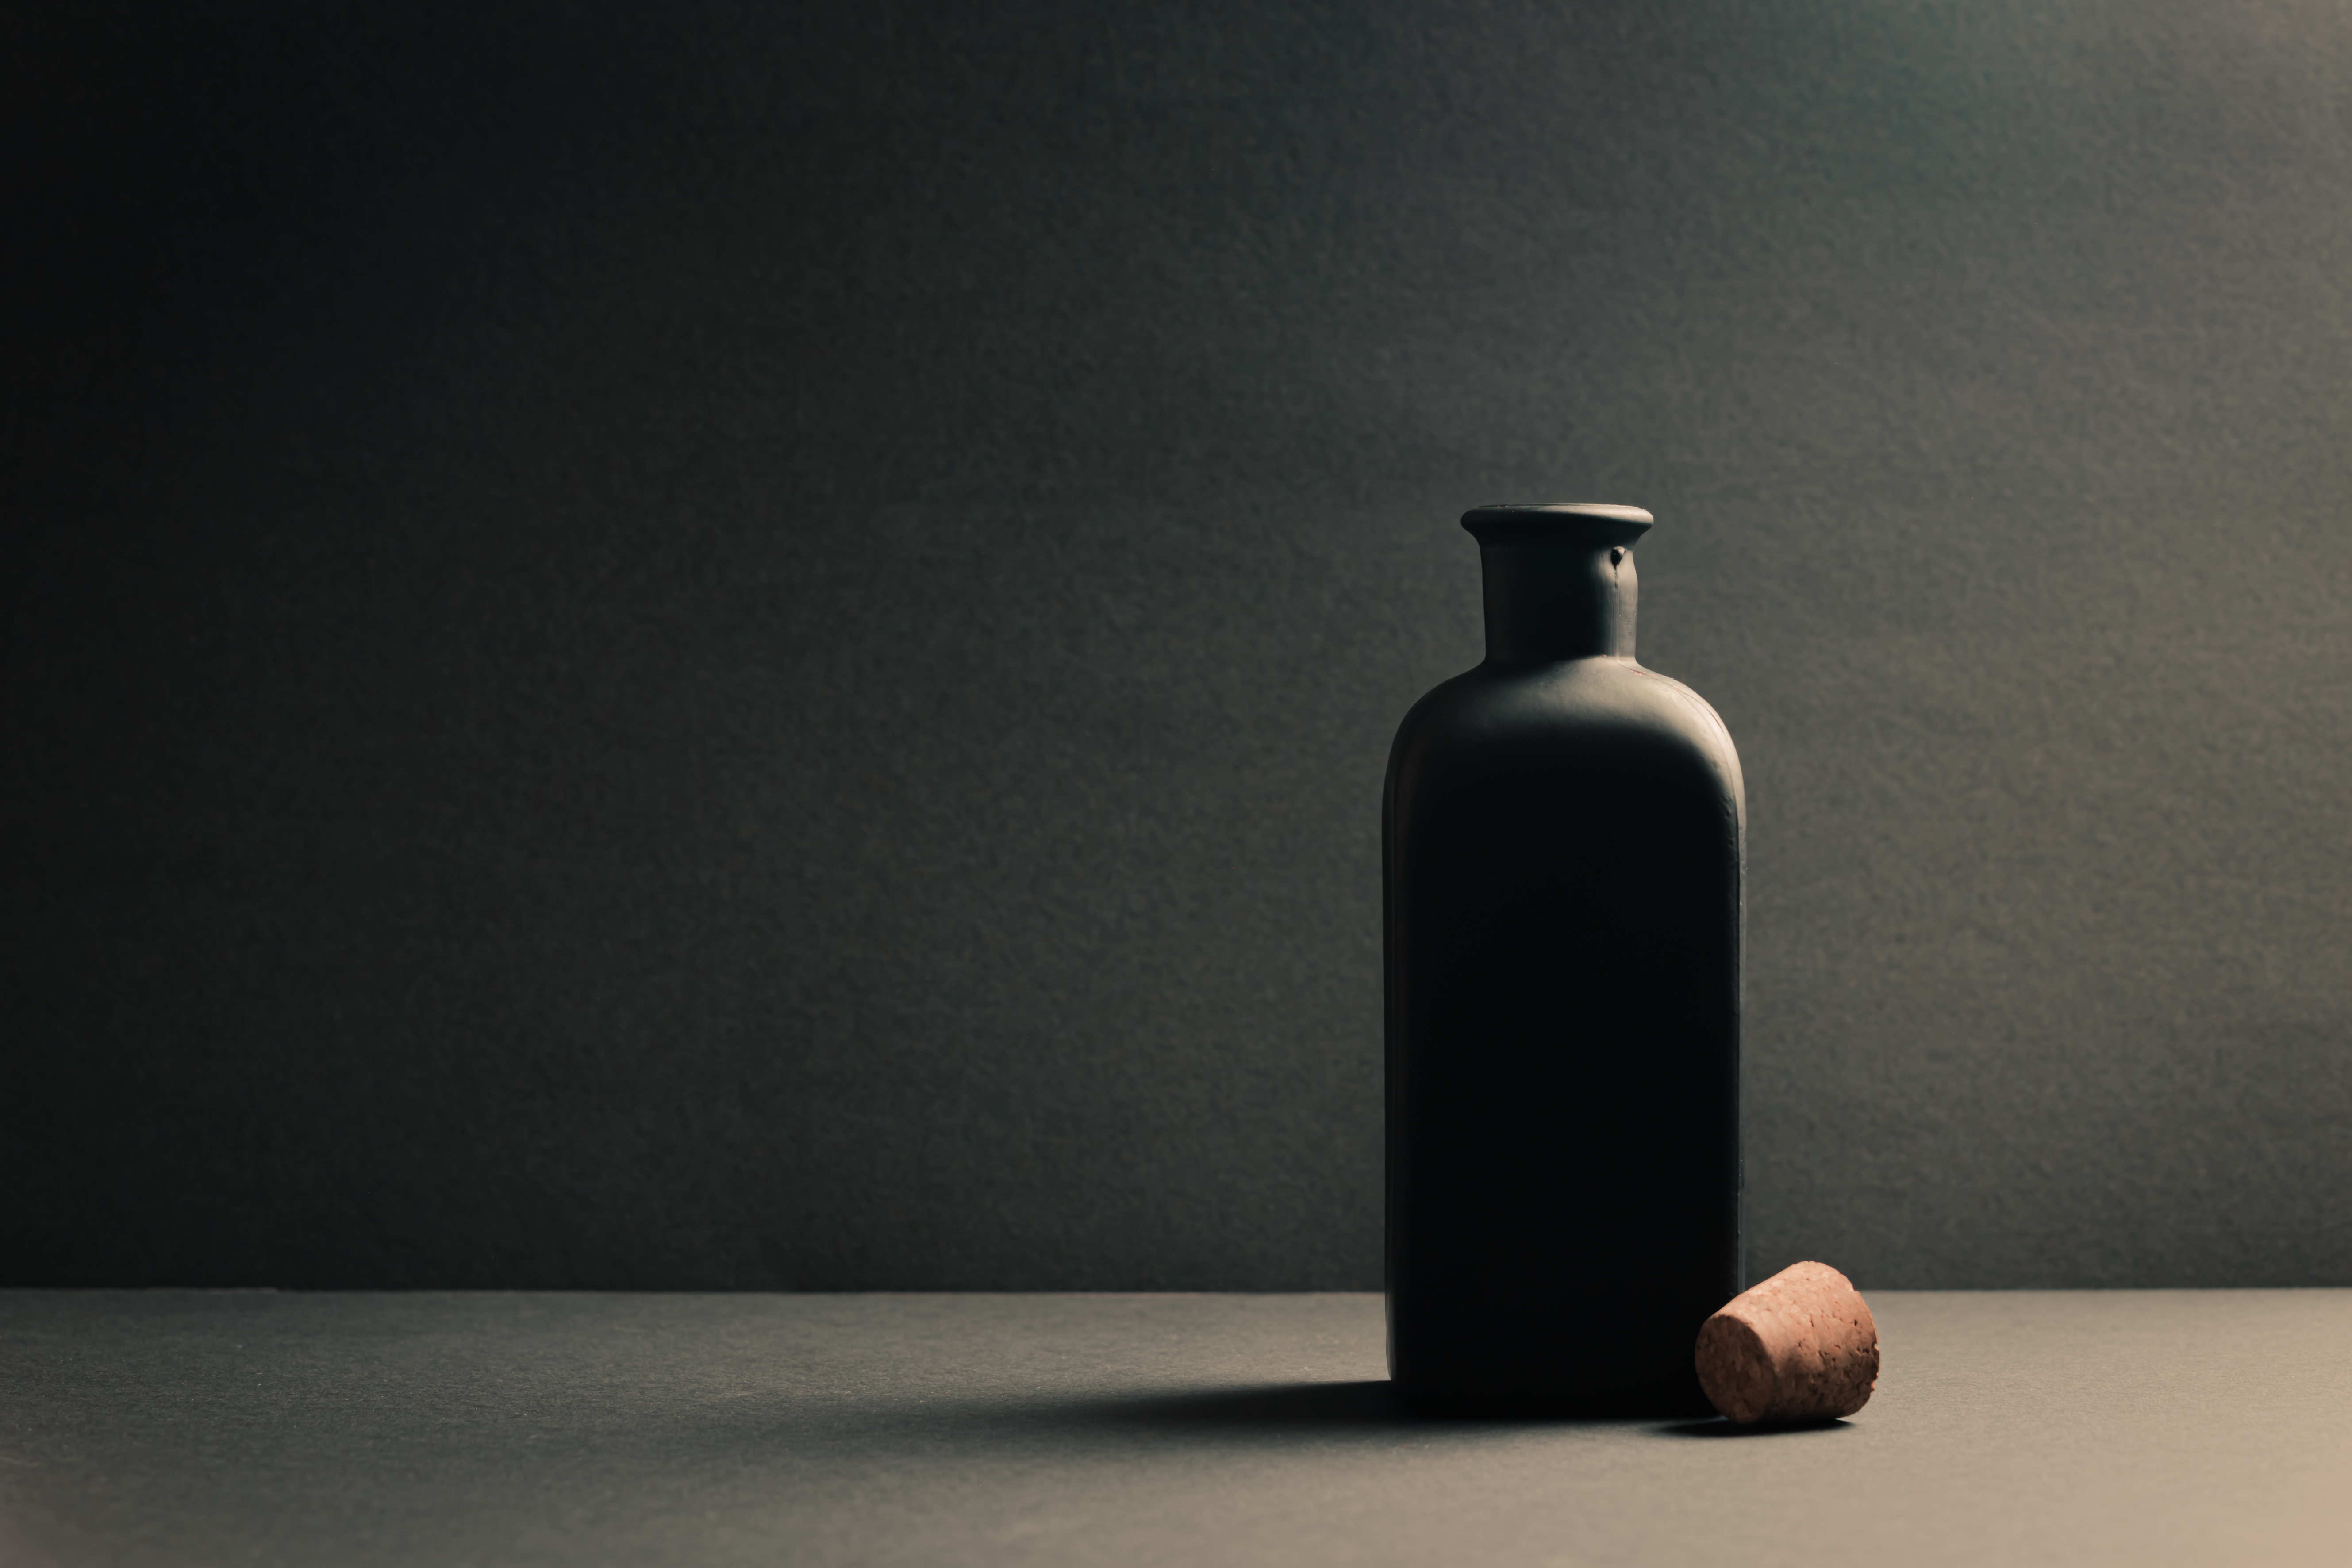 Single black ceramic bottle